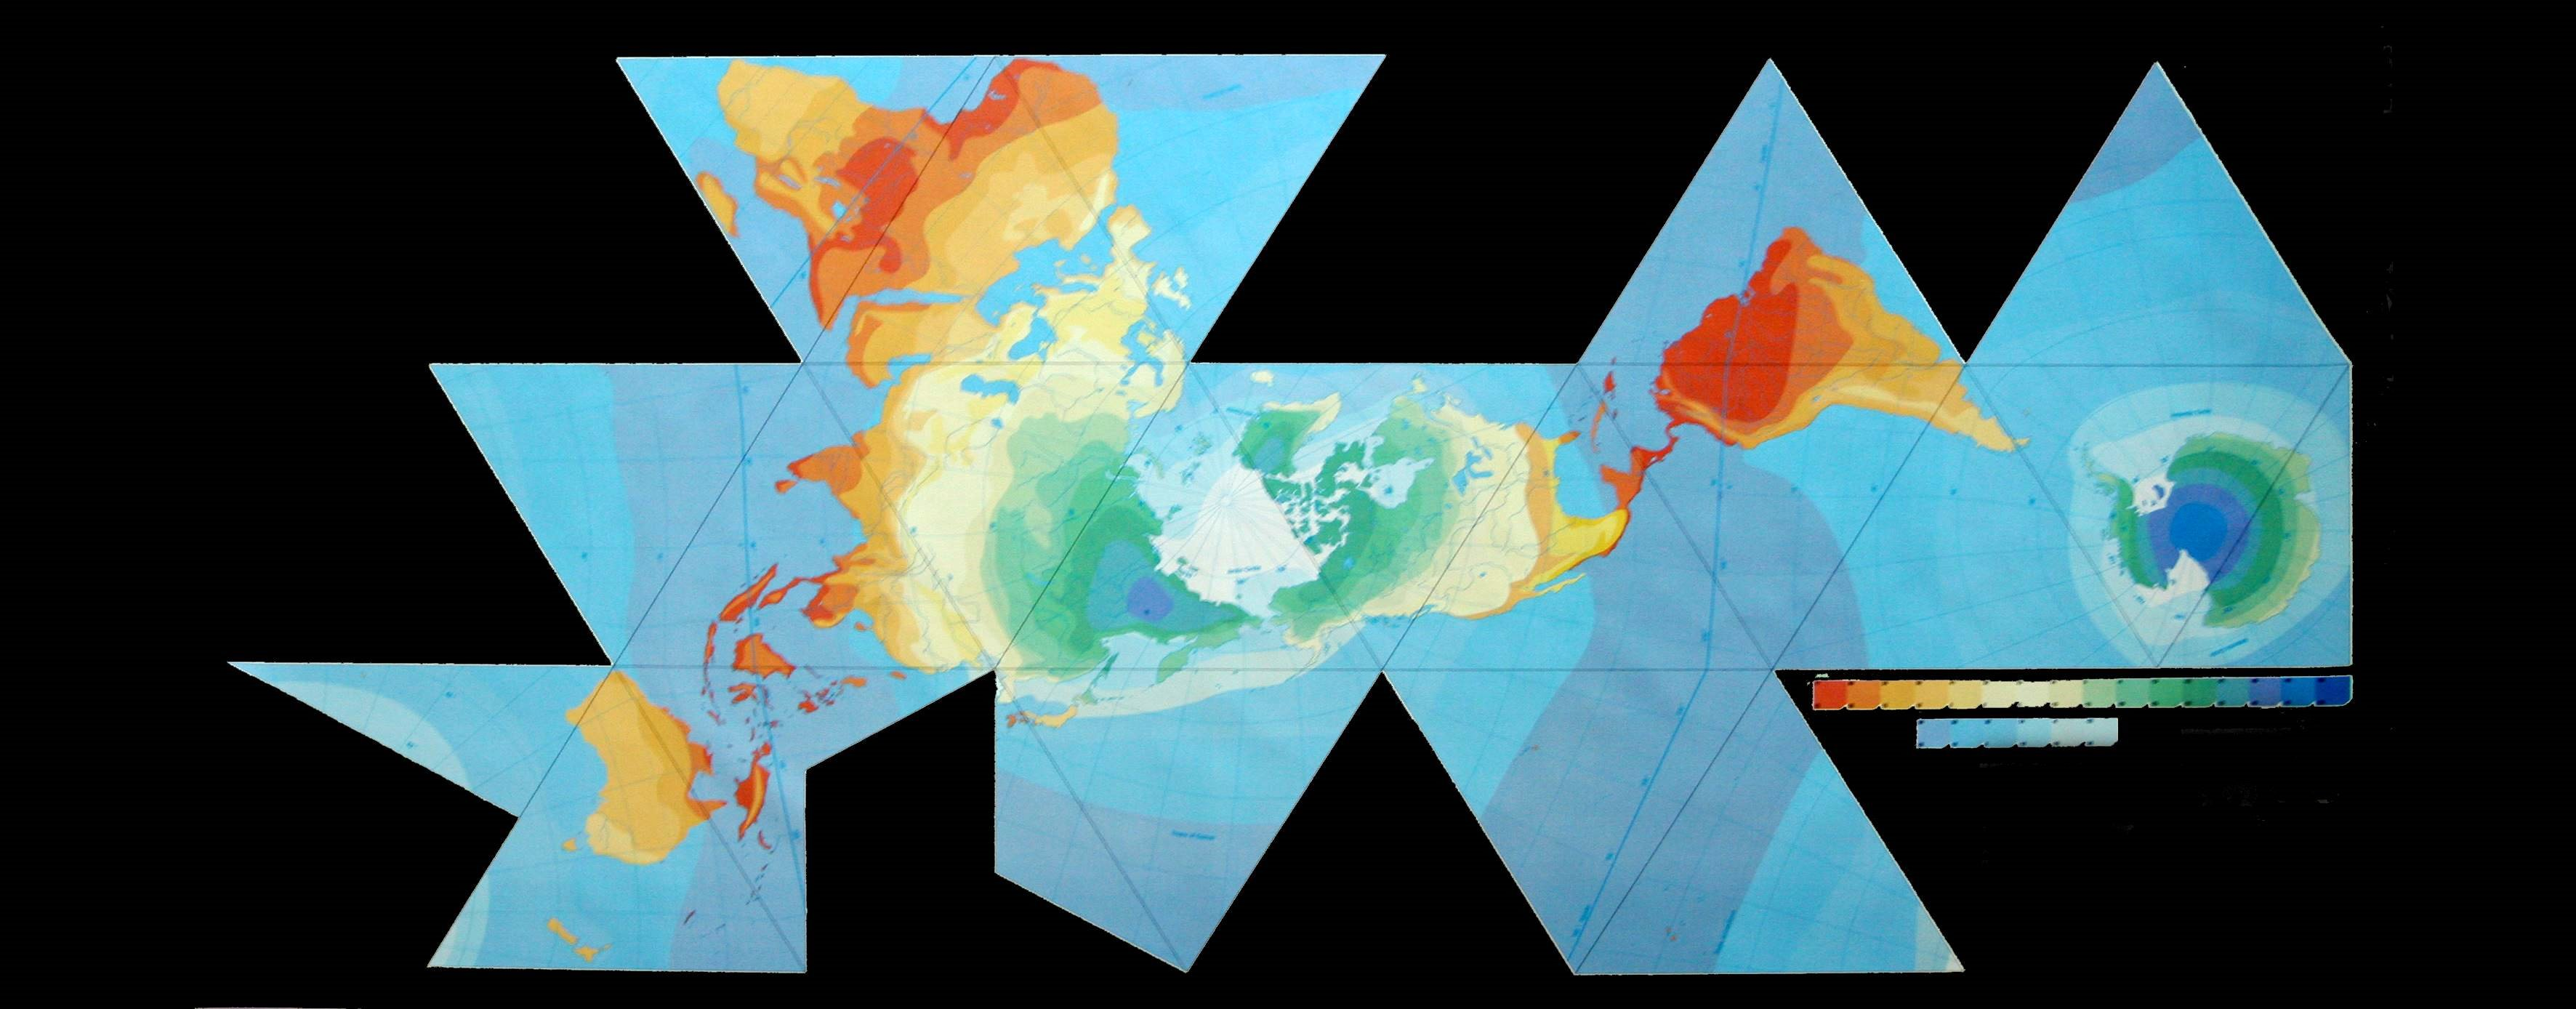 7) Critique of Fuller's Dymaxion Map compared to B.J.S. Cahill's ...